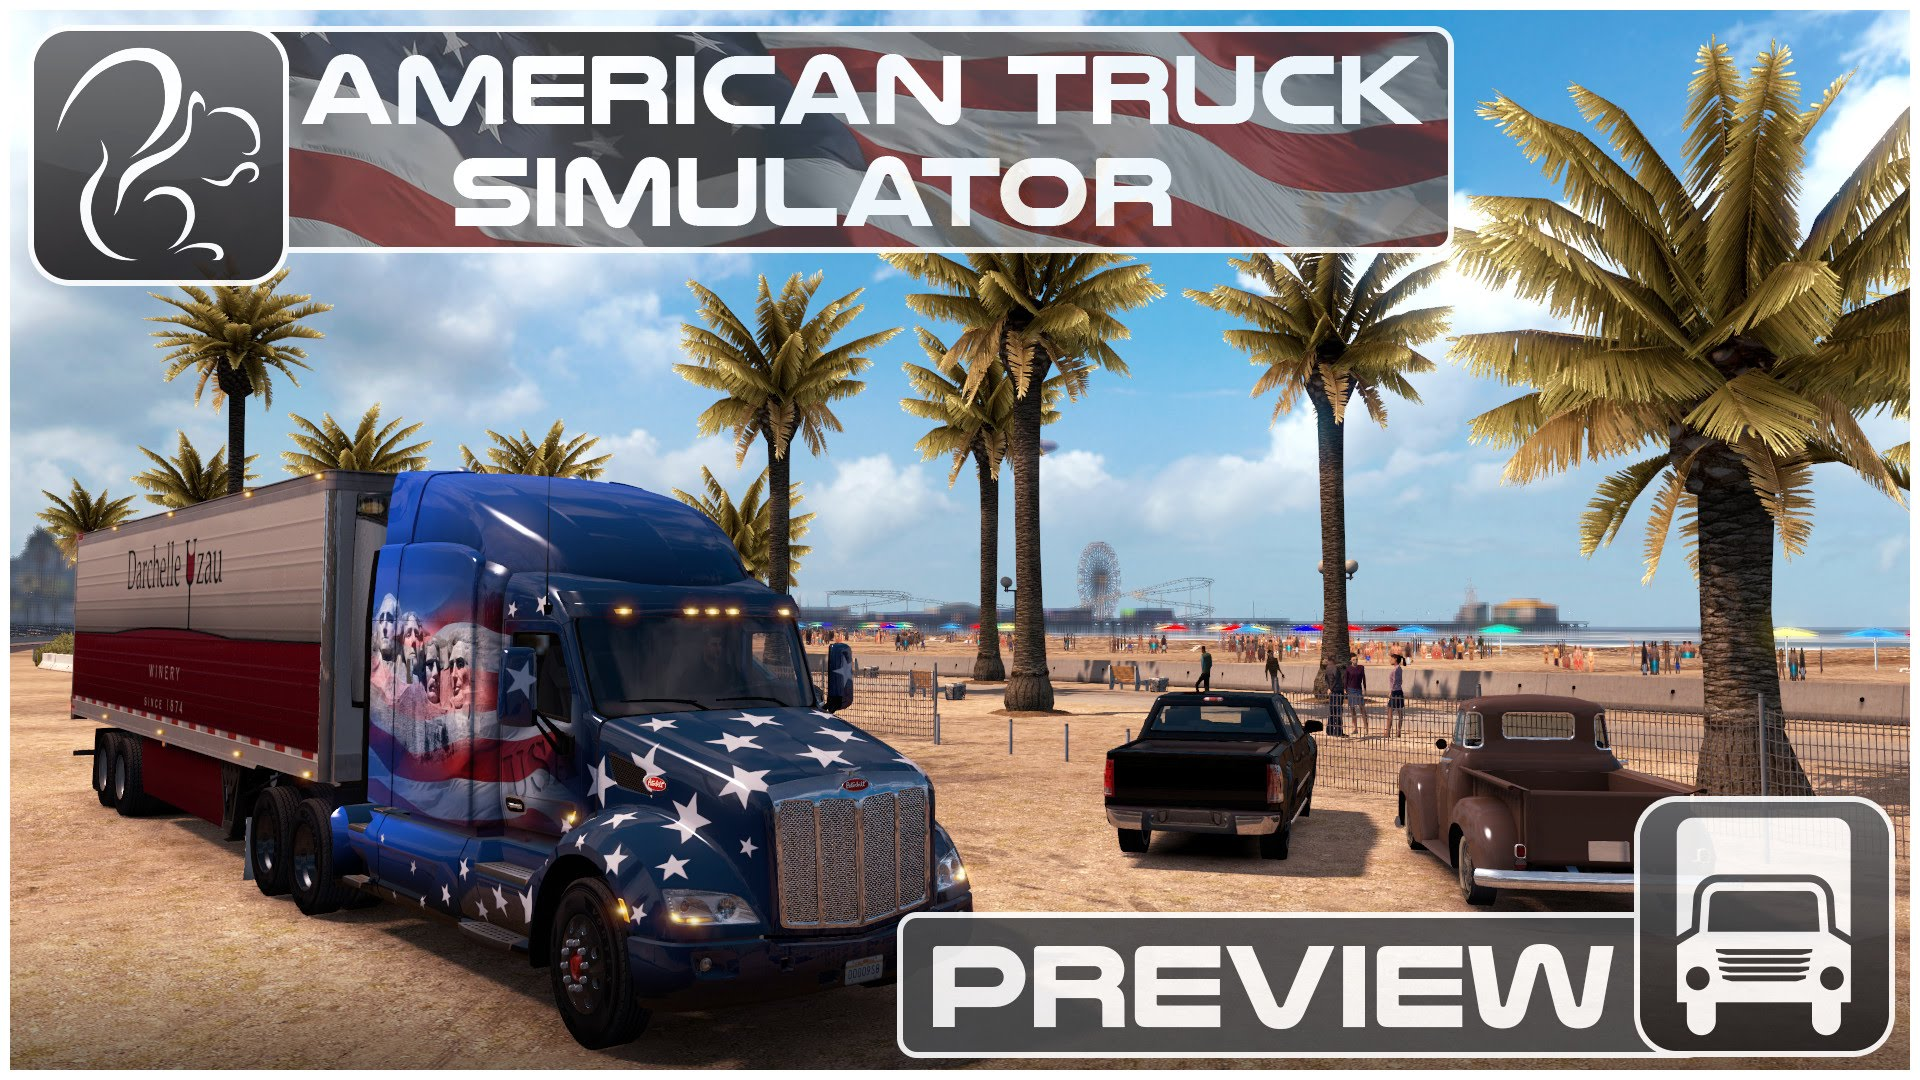 American Truck Simulator - Preview and Information